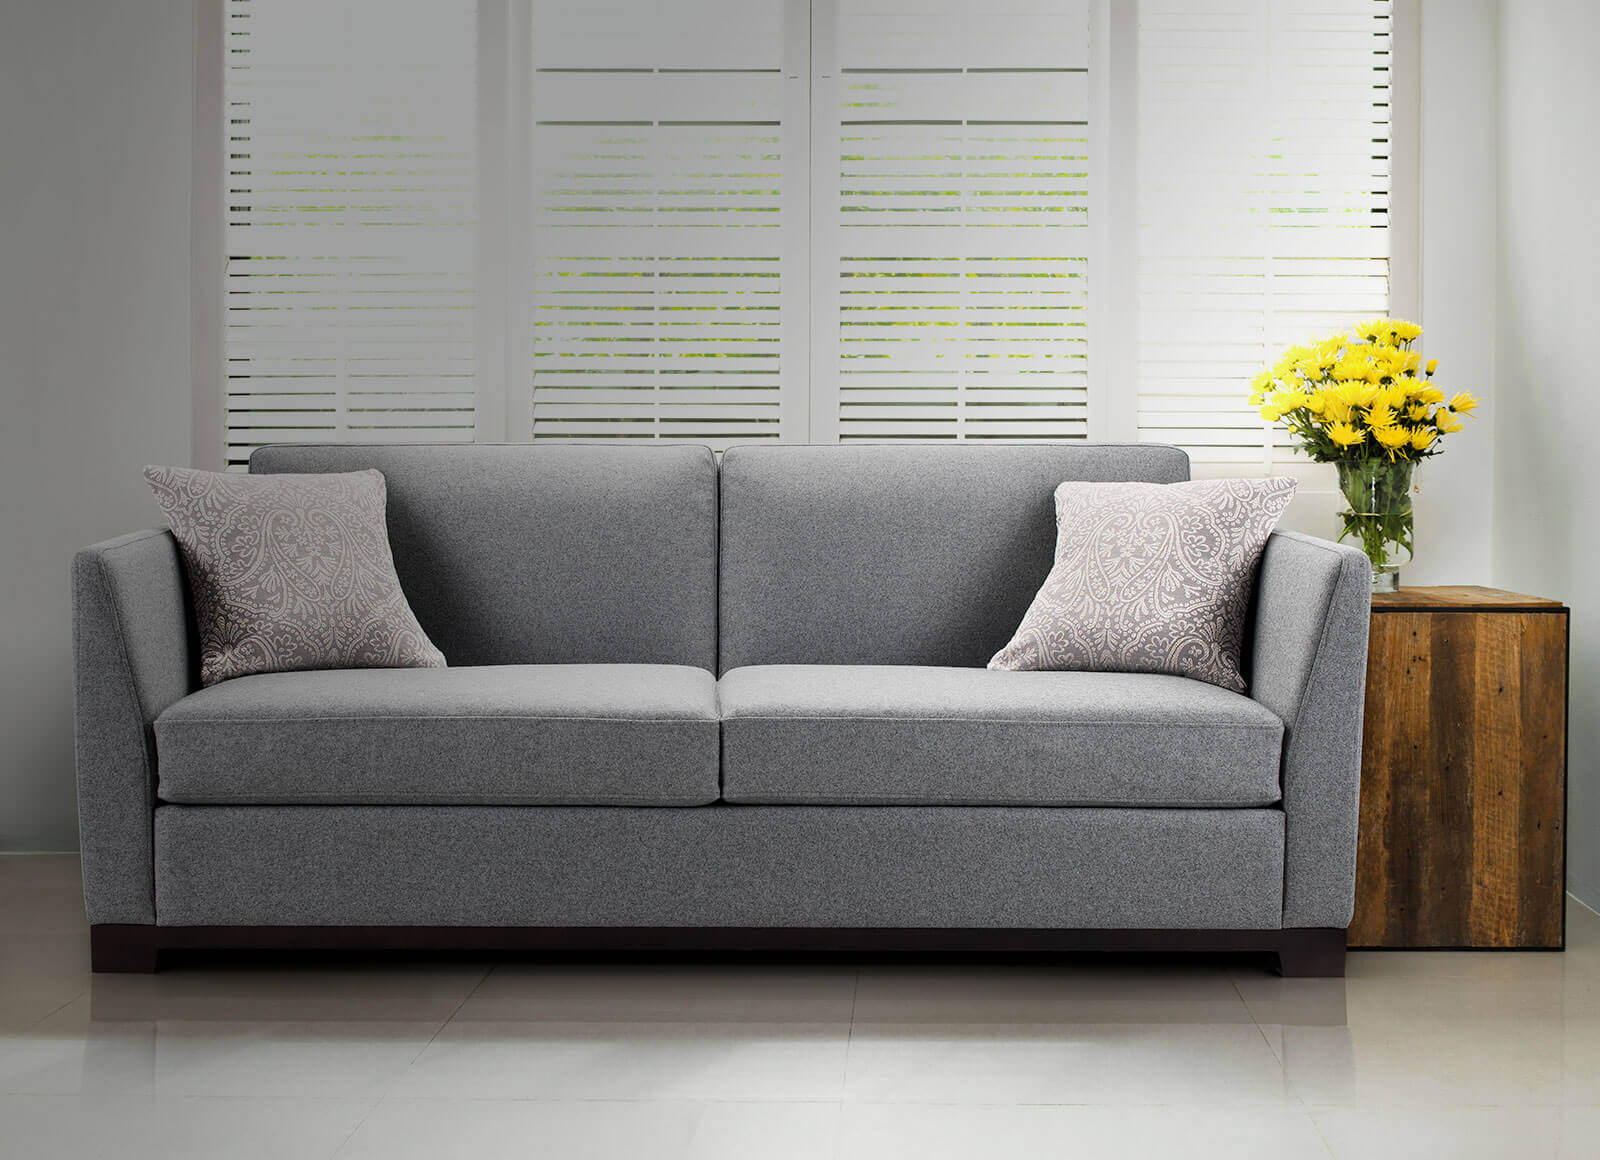 Sofa beds for every day use comfort day and night Loveseat sofa bed